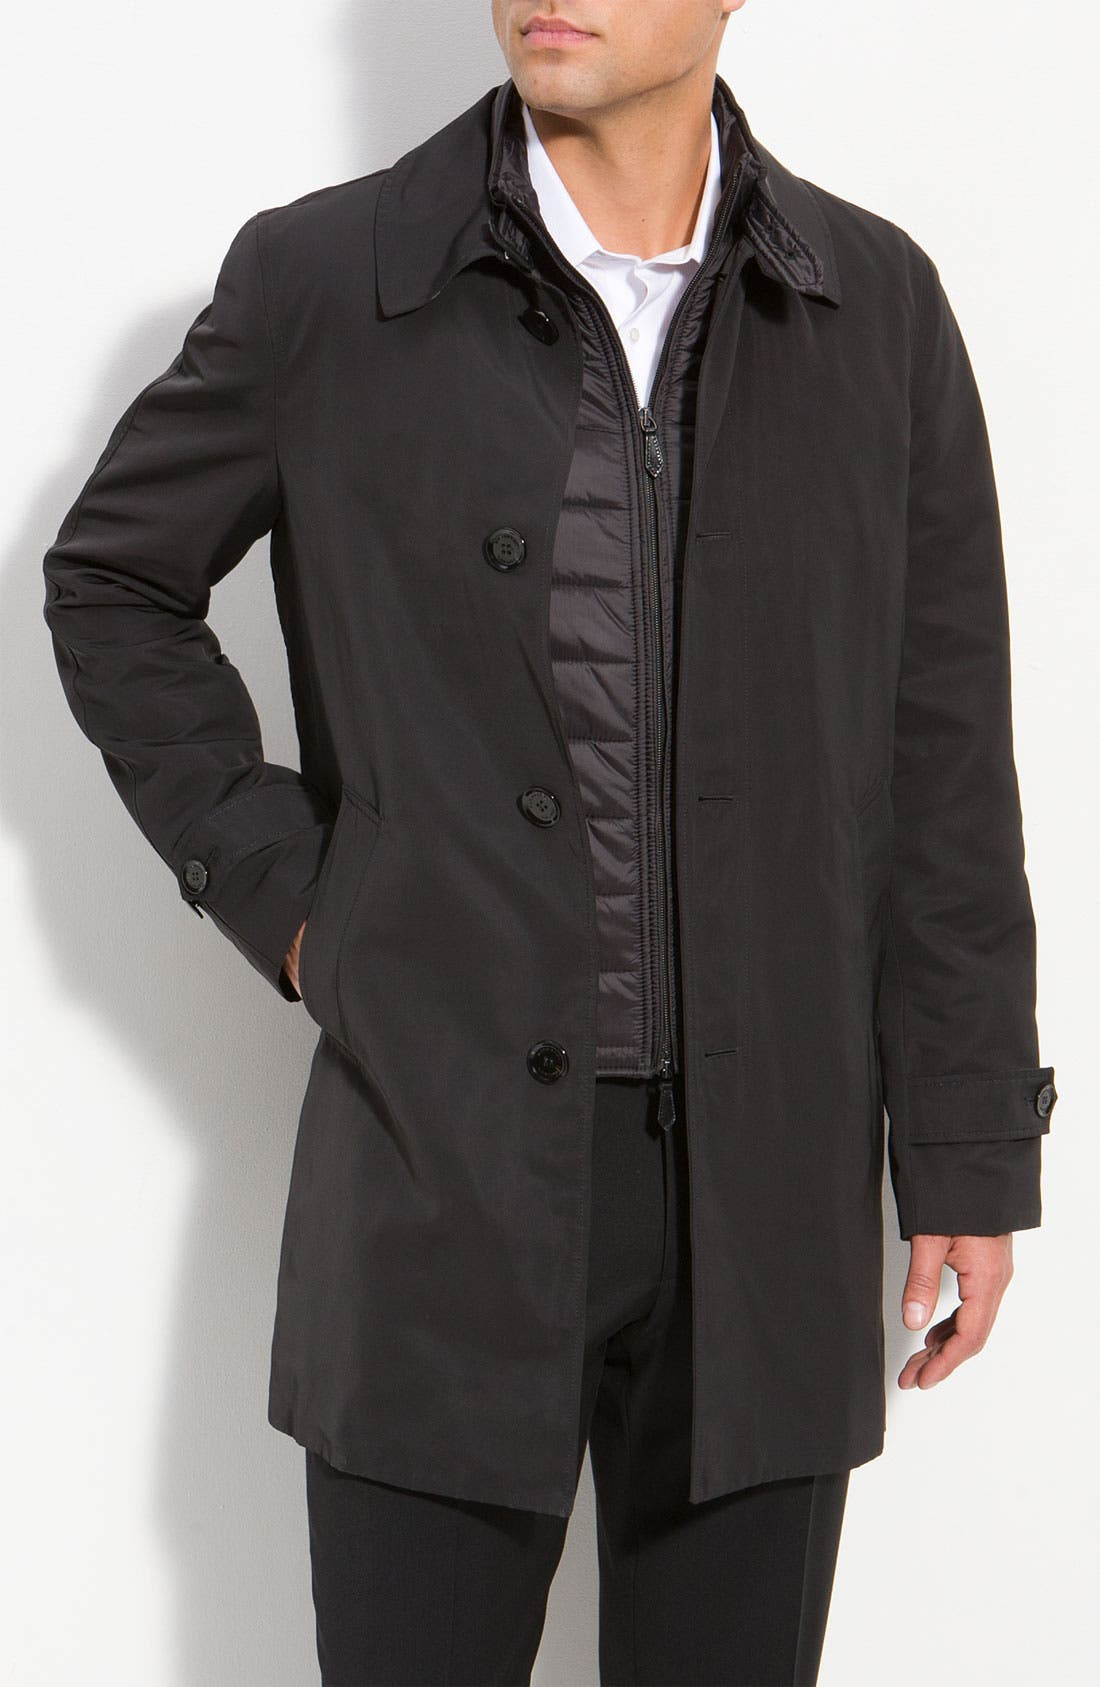 Main Image - Burberry London Layered Sport Vest & Overcoat